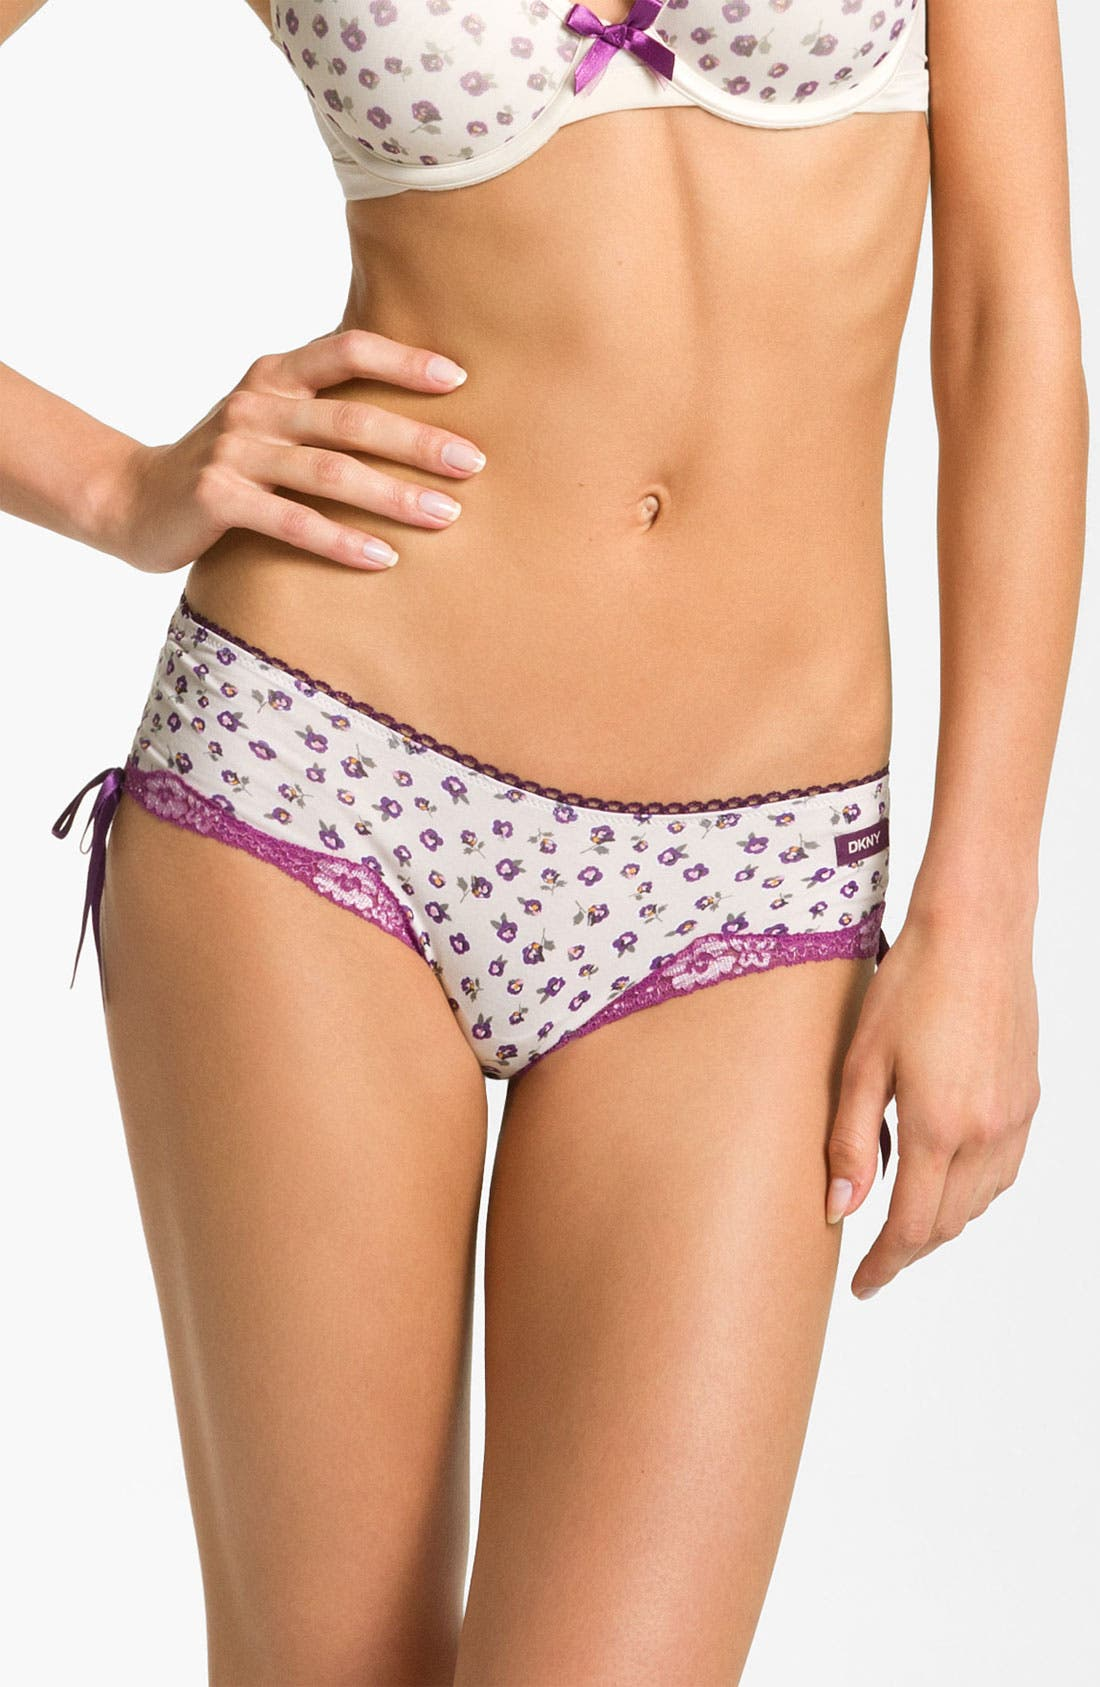 Alternate Image 1 Selected - DKNY 'Cutie' Cotton Bikini (3 for $27)